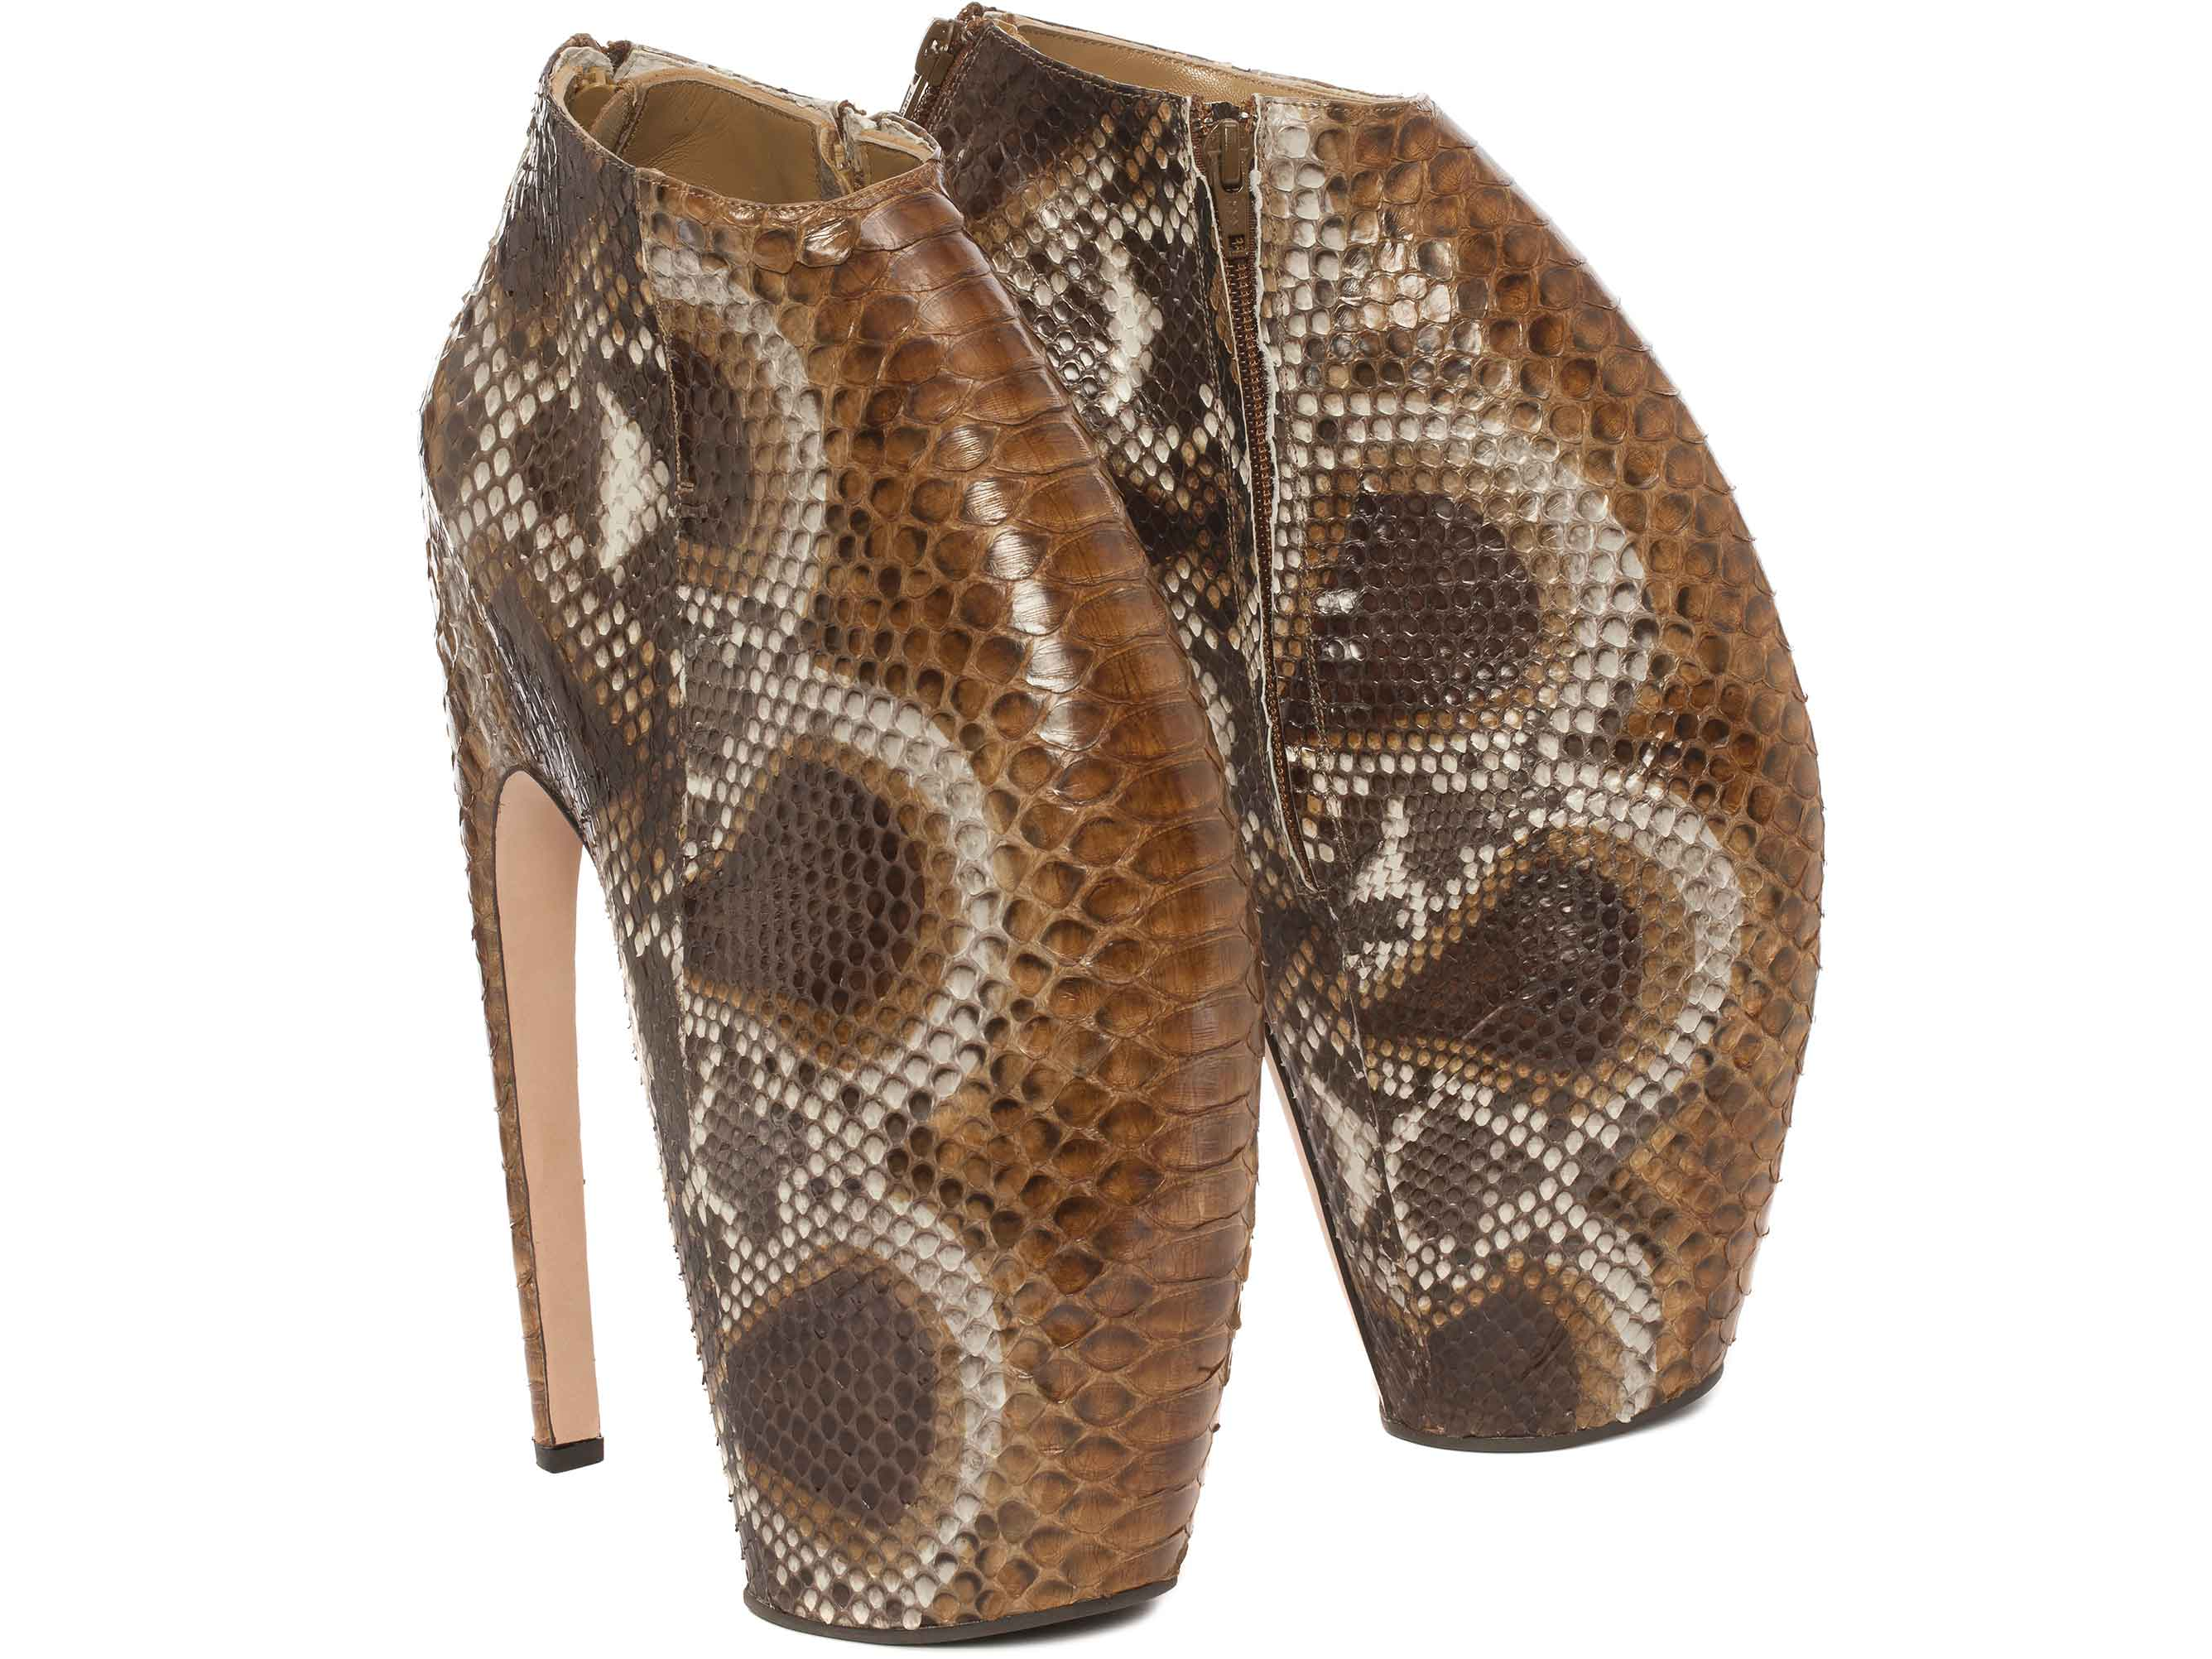 7734bab59885 Alexander McQueen s iconic Armadillo Boots to be auctioned for ...